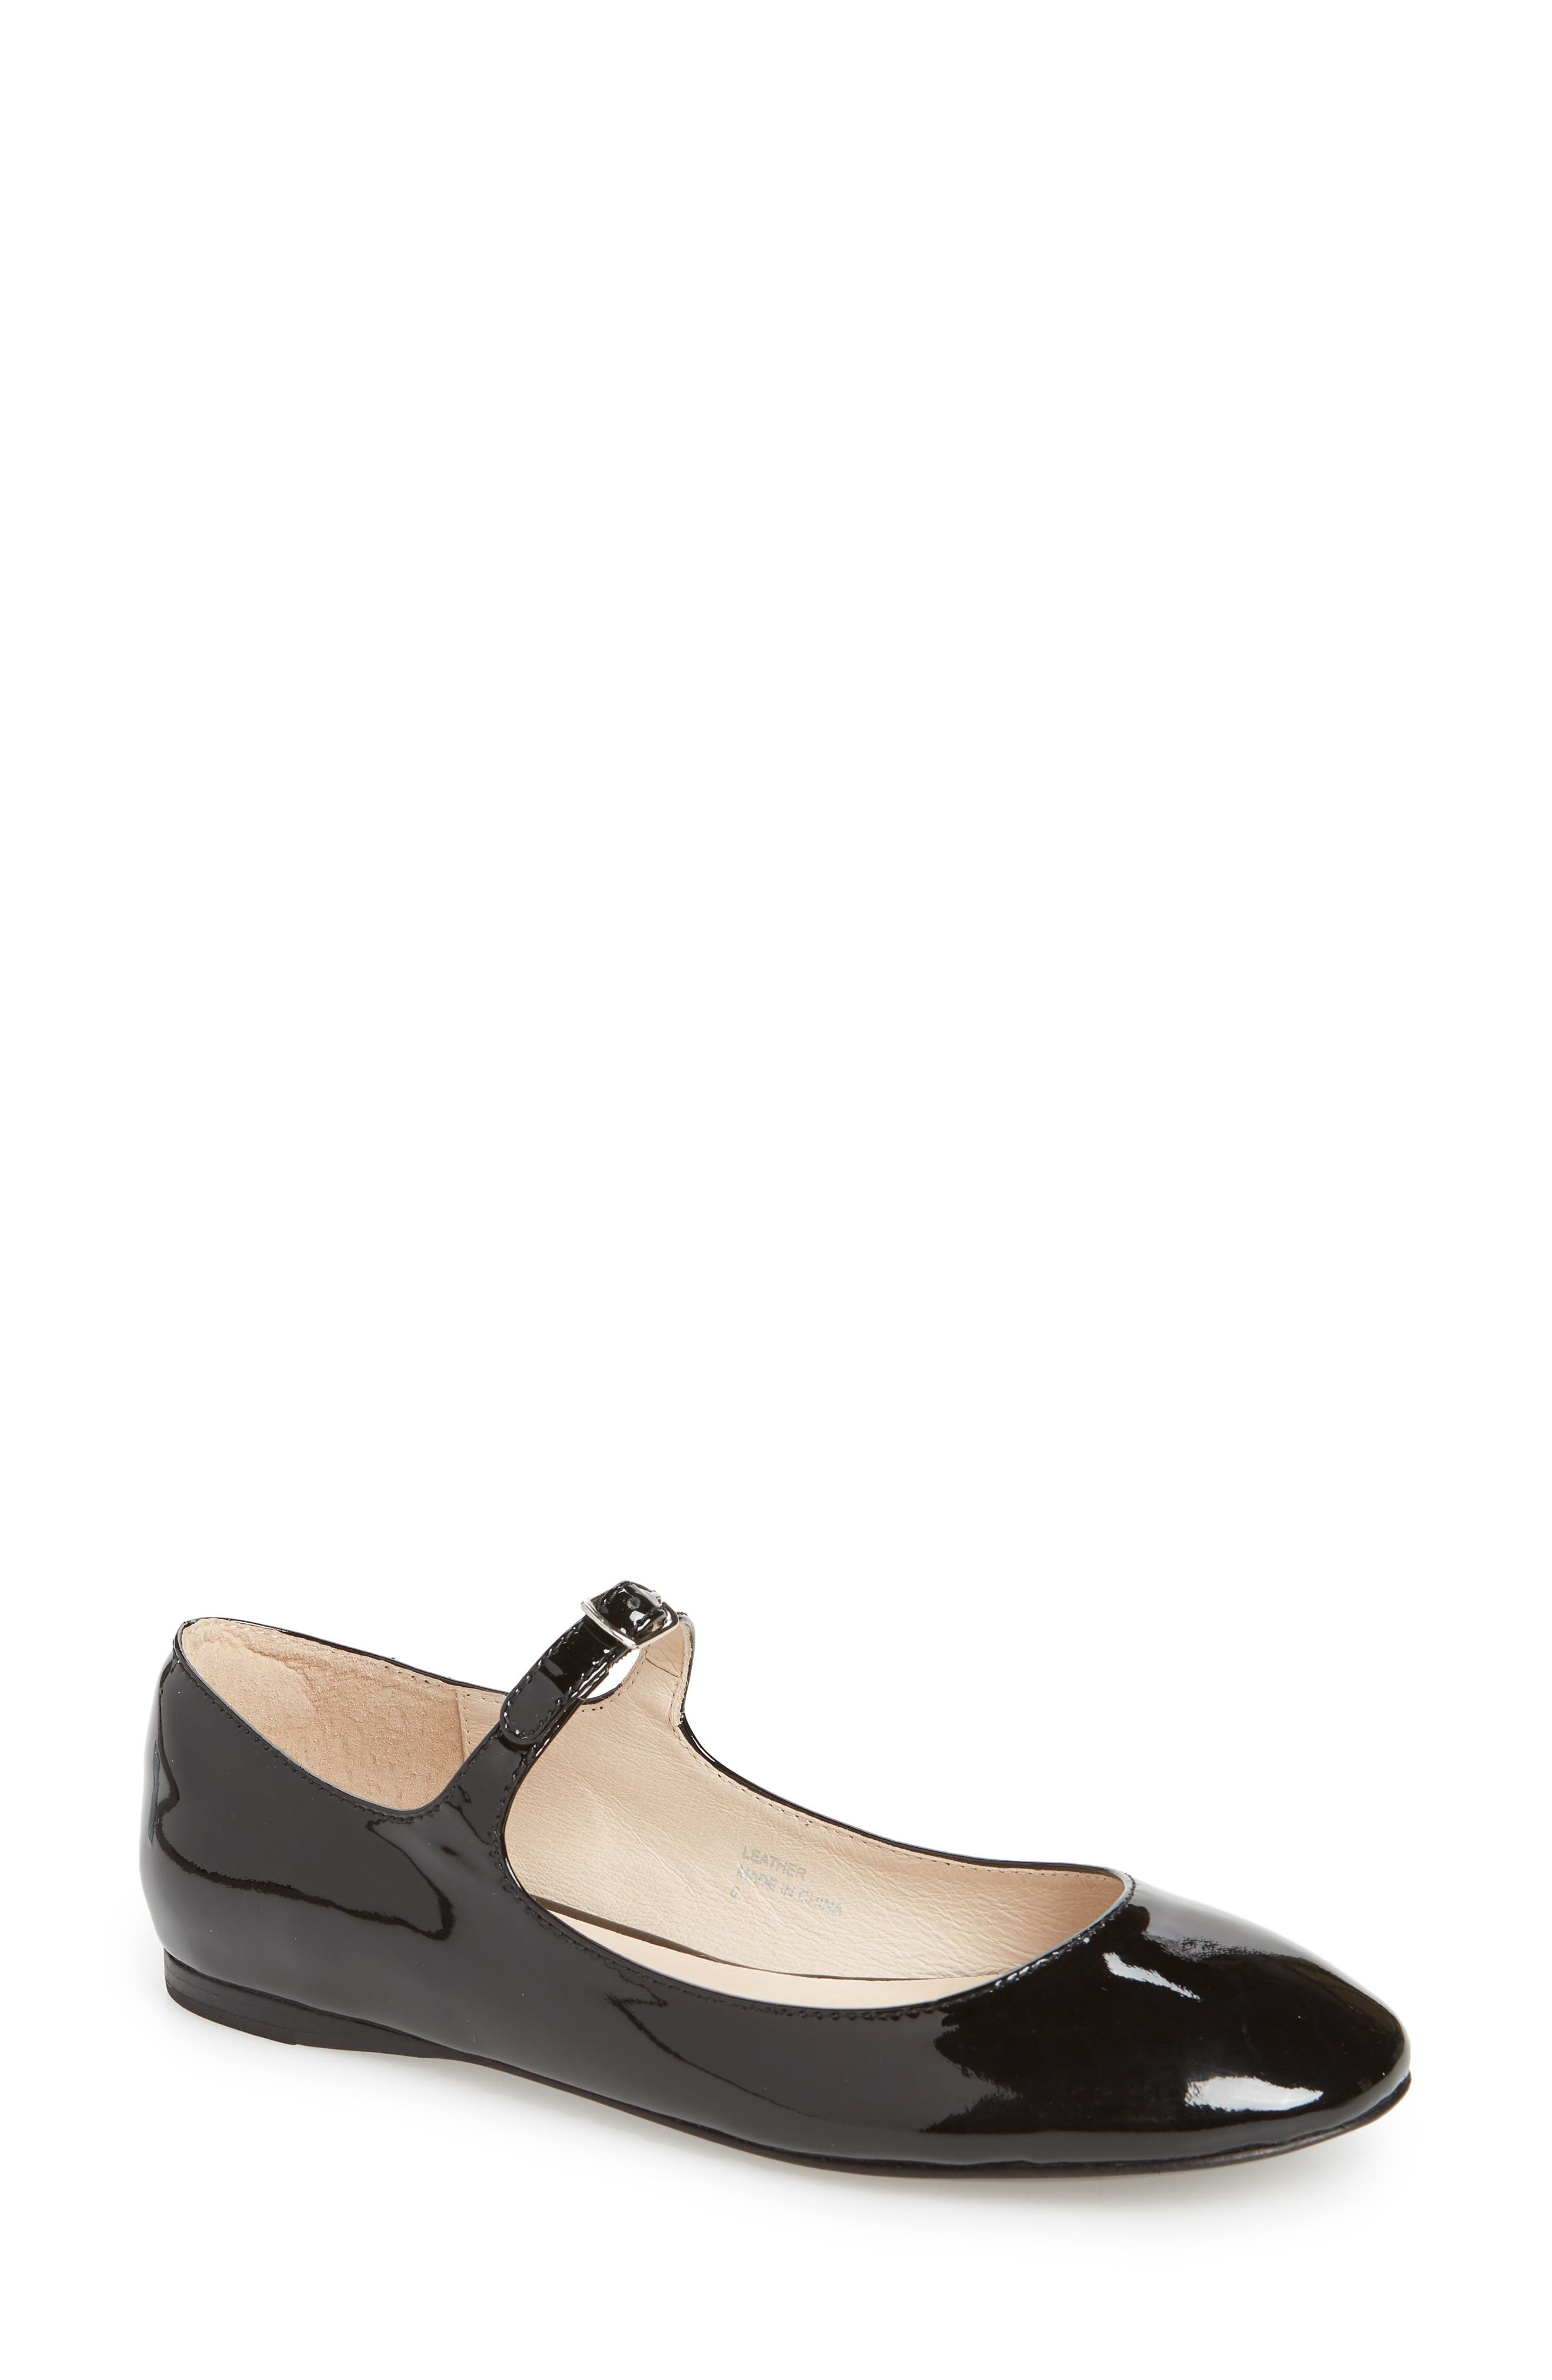 Marcy Mary Jane Flat,                         Main,                         color, Black